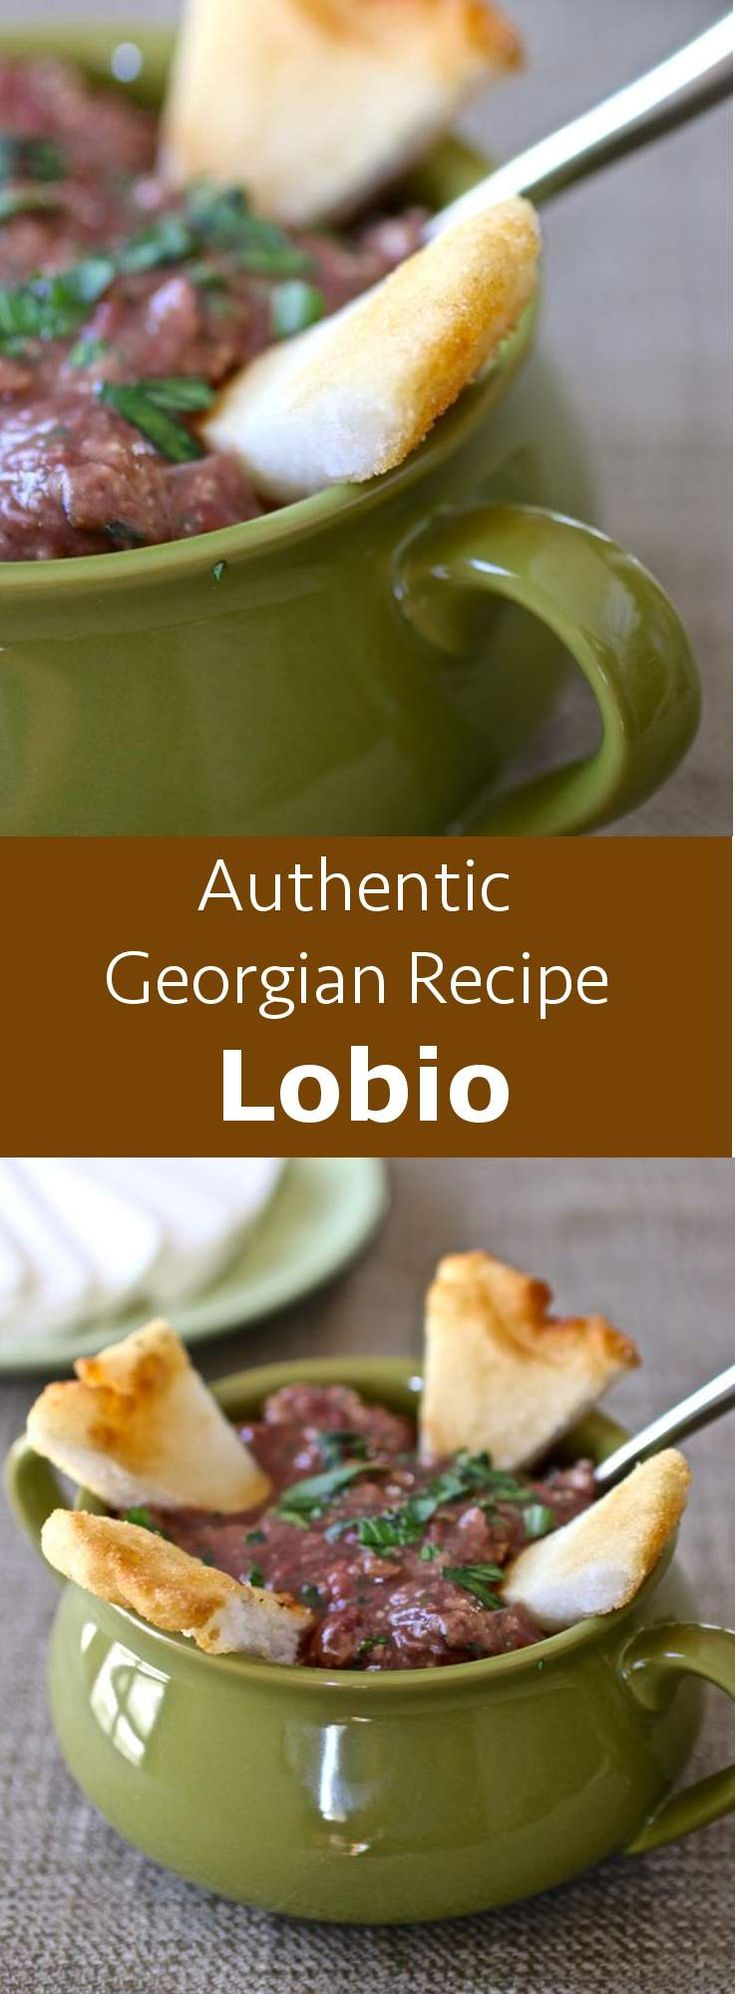 Lobio is Georgia's national dish. Lobio nigvzit, its most common version, is a thick soup with red beans, onions, walnuts and blue fenugreek. #vegetarian #glutenfree #soup #georgia #georgian